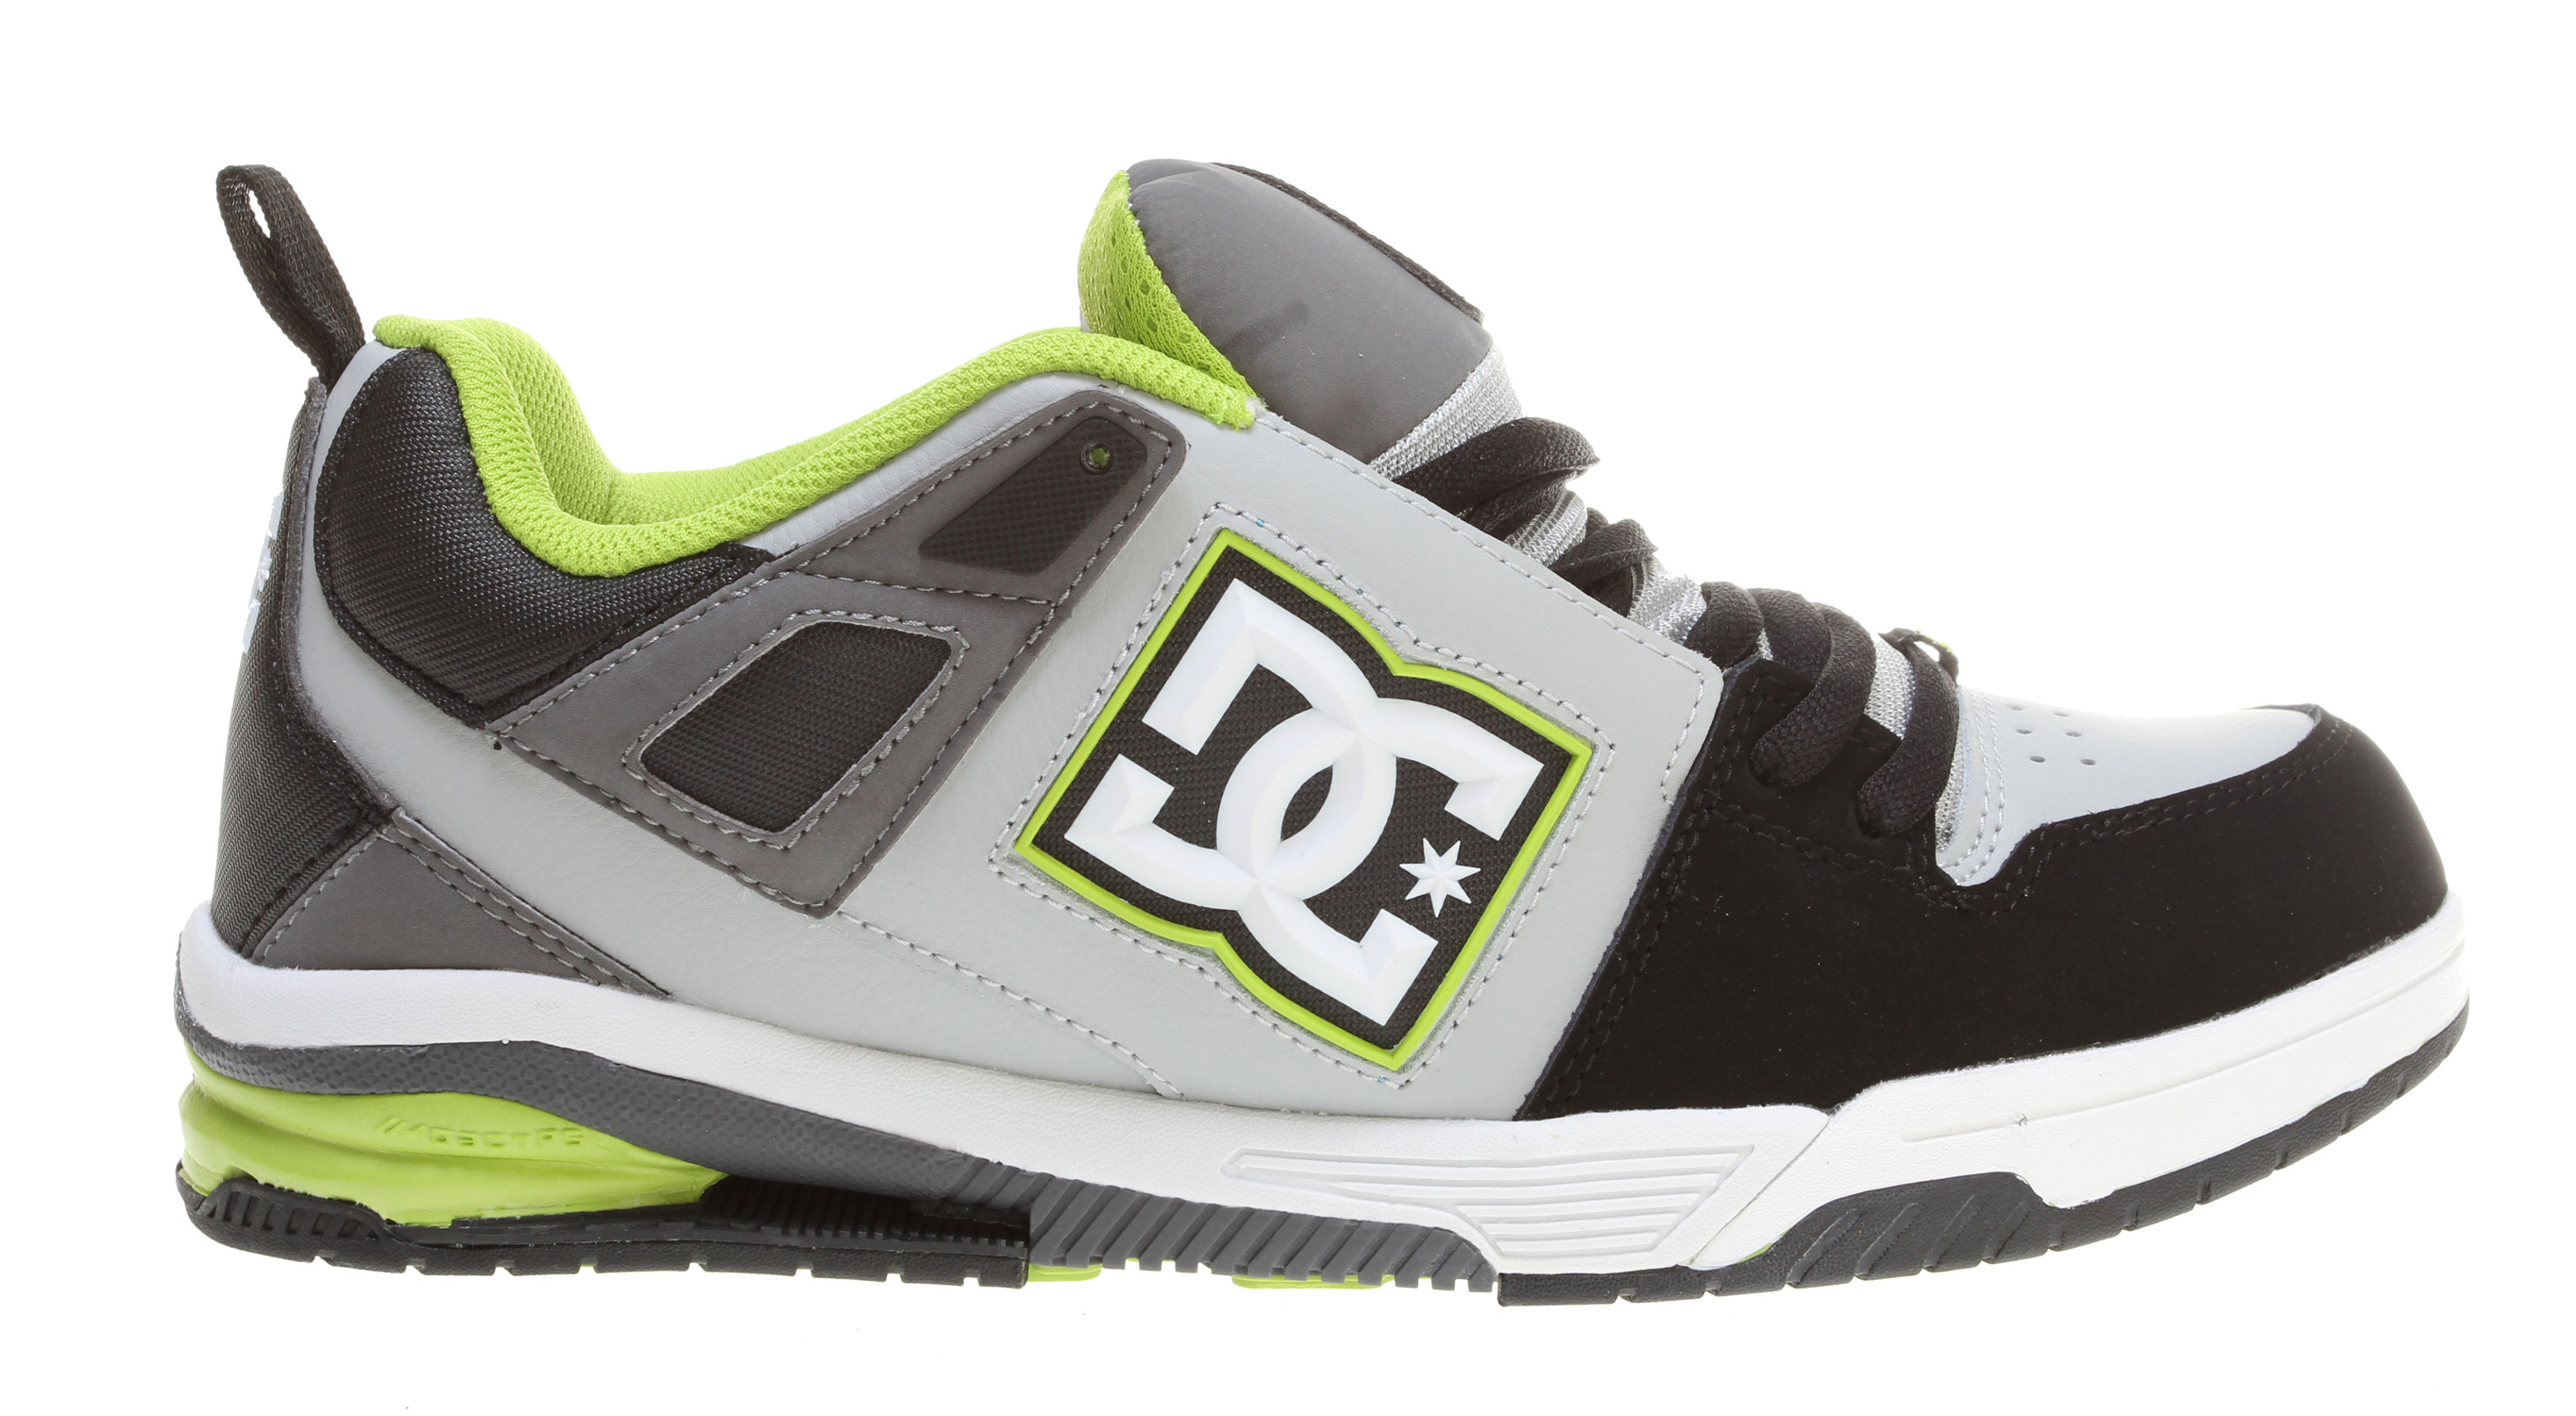 Skateboard Key Features of the DC Impact RS Skate Shoes: Composed of strategically placed columns for cushioning and rebound molded shank plate, and features Unilite for lightweight performance Dual Molded quarter logo piece Lightweight mesh tongue bottom Engineered Pill pattern in outsole for grip and control - $57.95